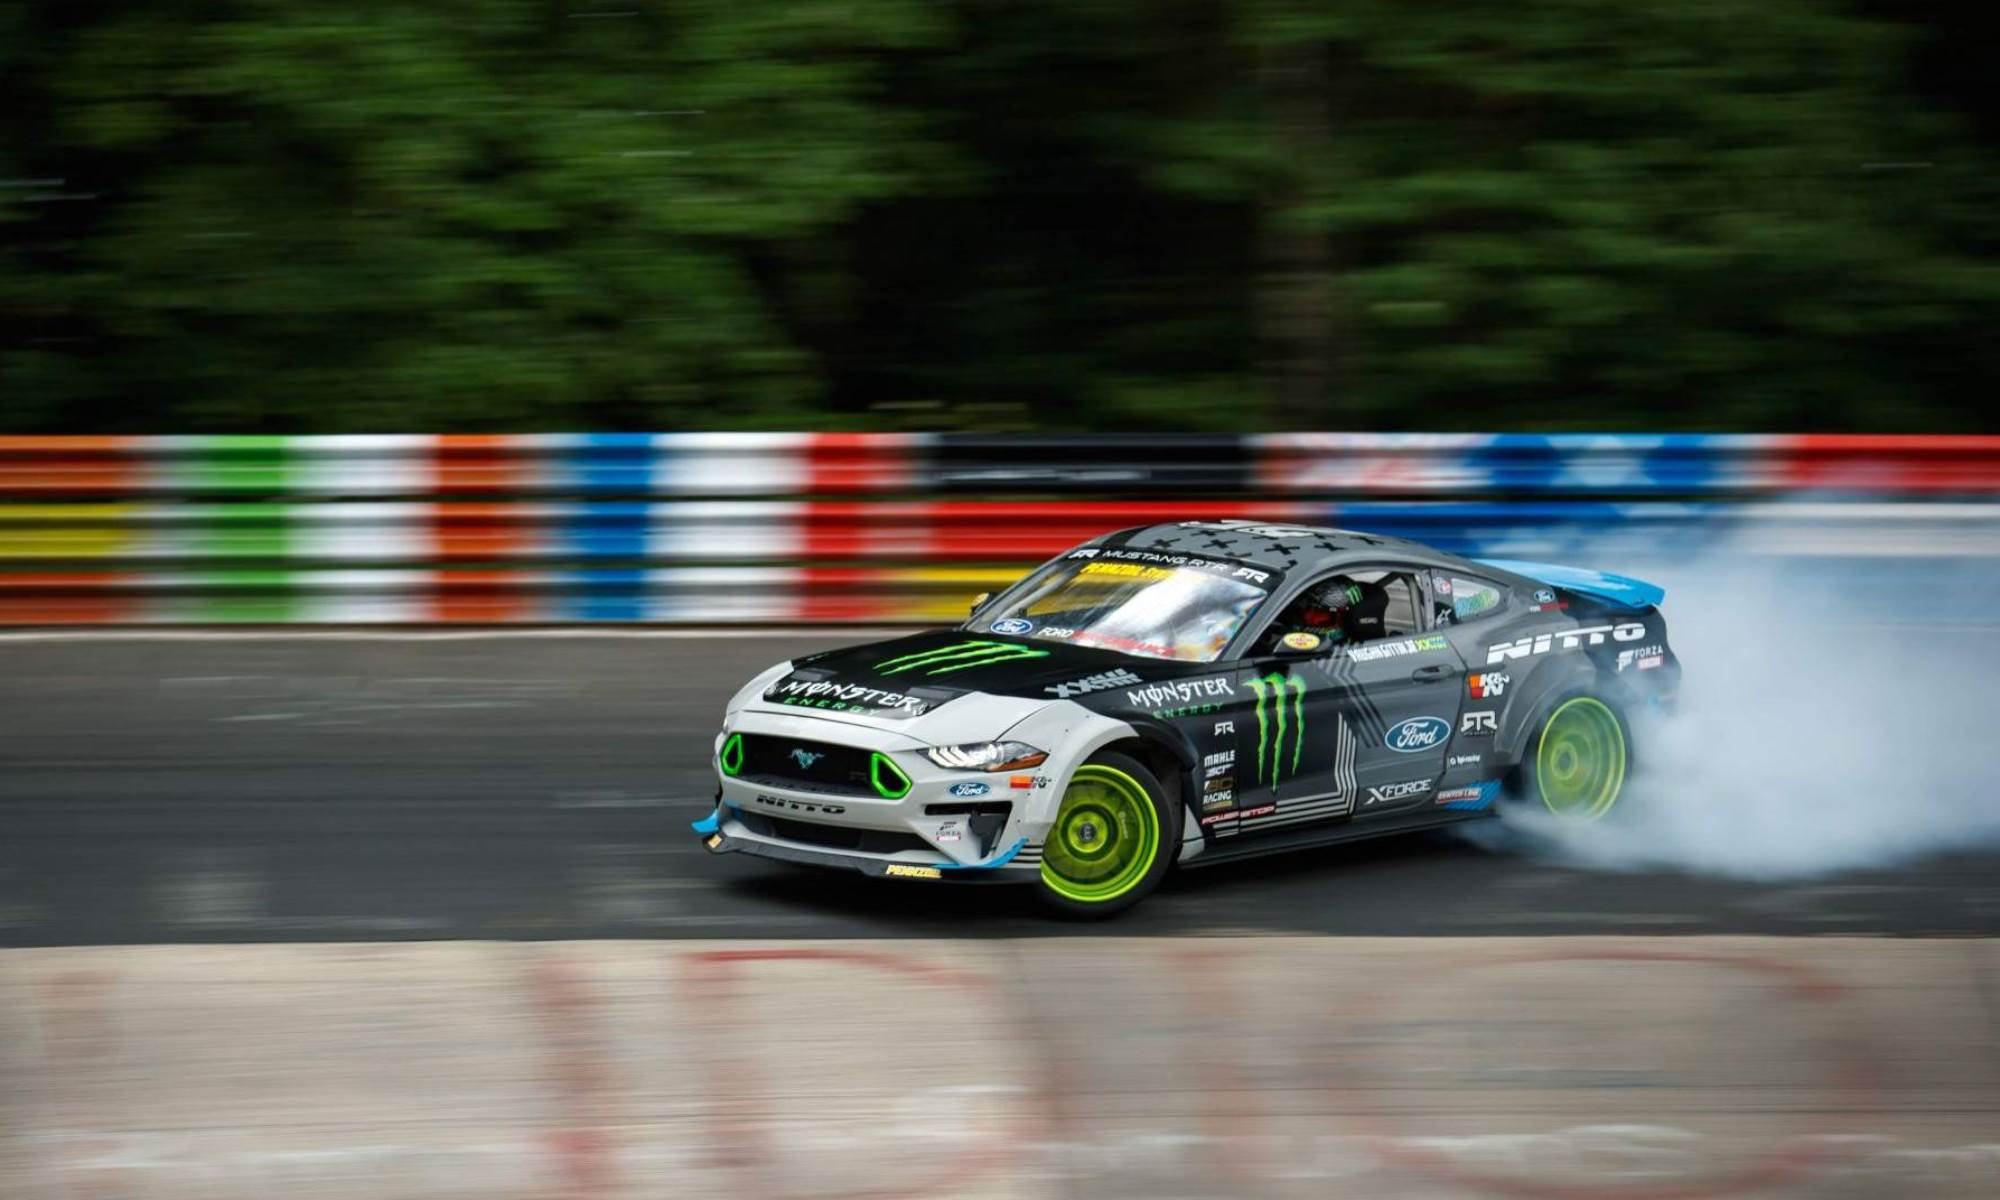 Drift King of the Ring Vaughn Gittin Jr on the Karrussell